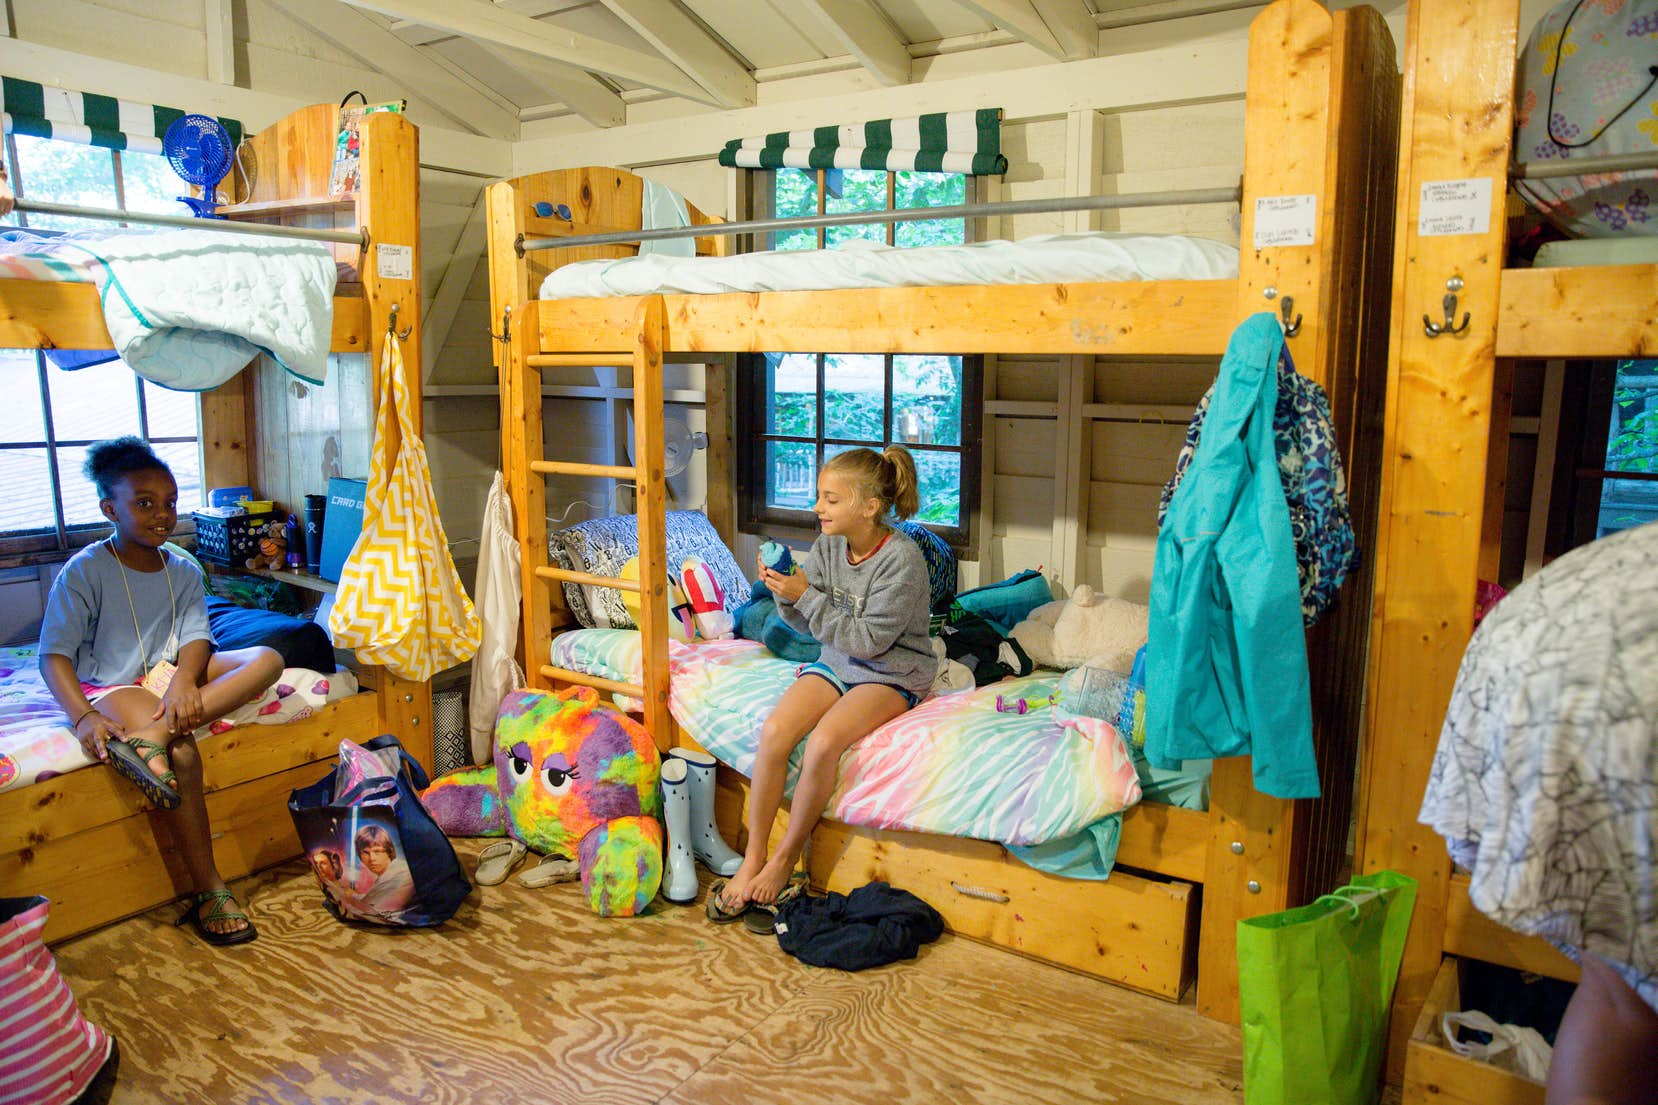 Camp Cabins Bunks And Counselors At Greystone For Girls